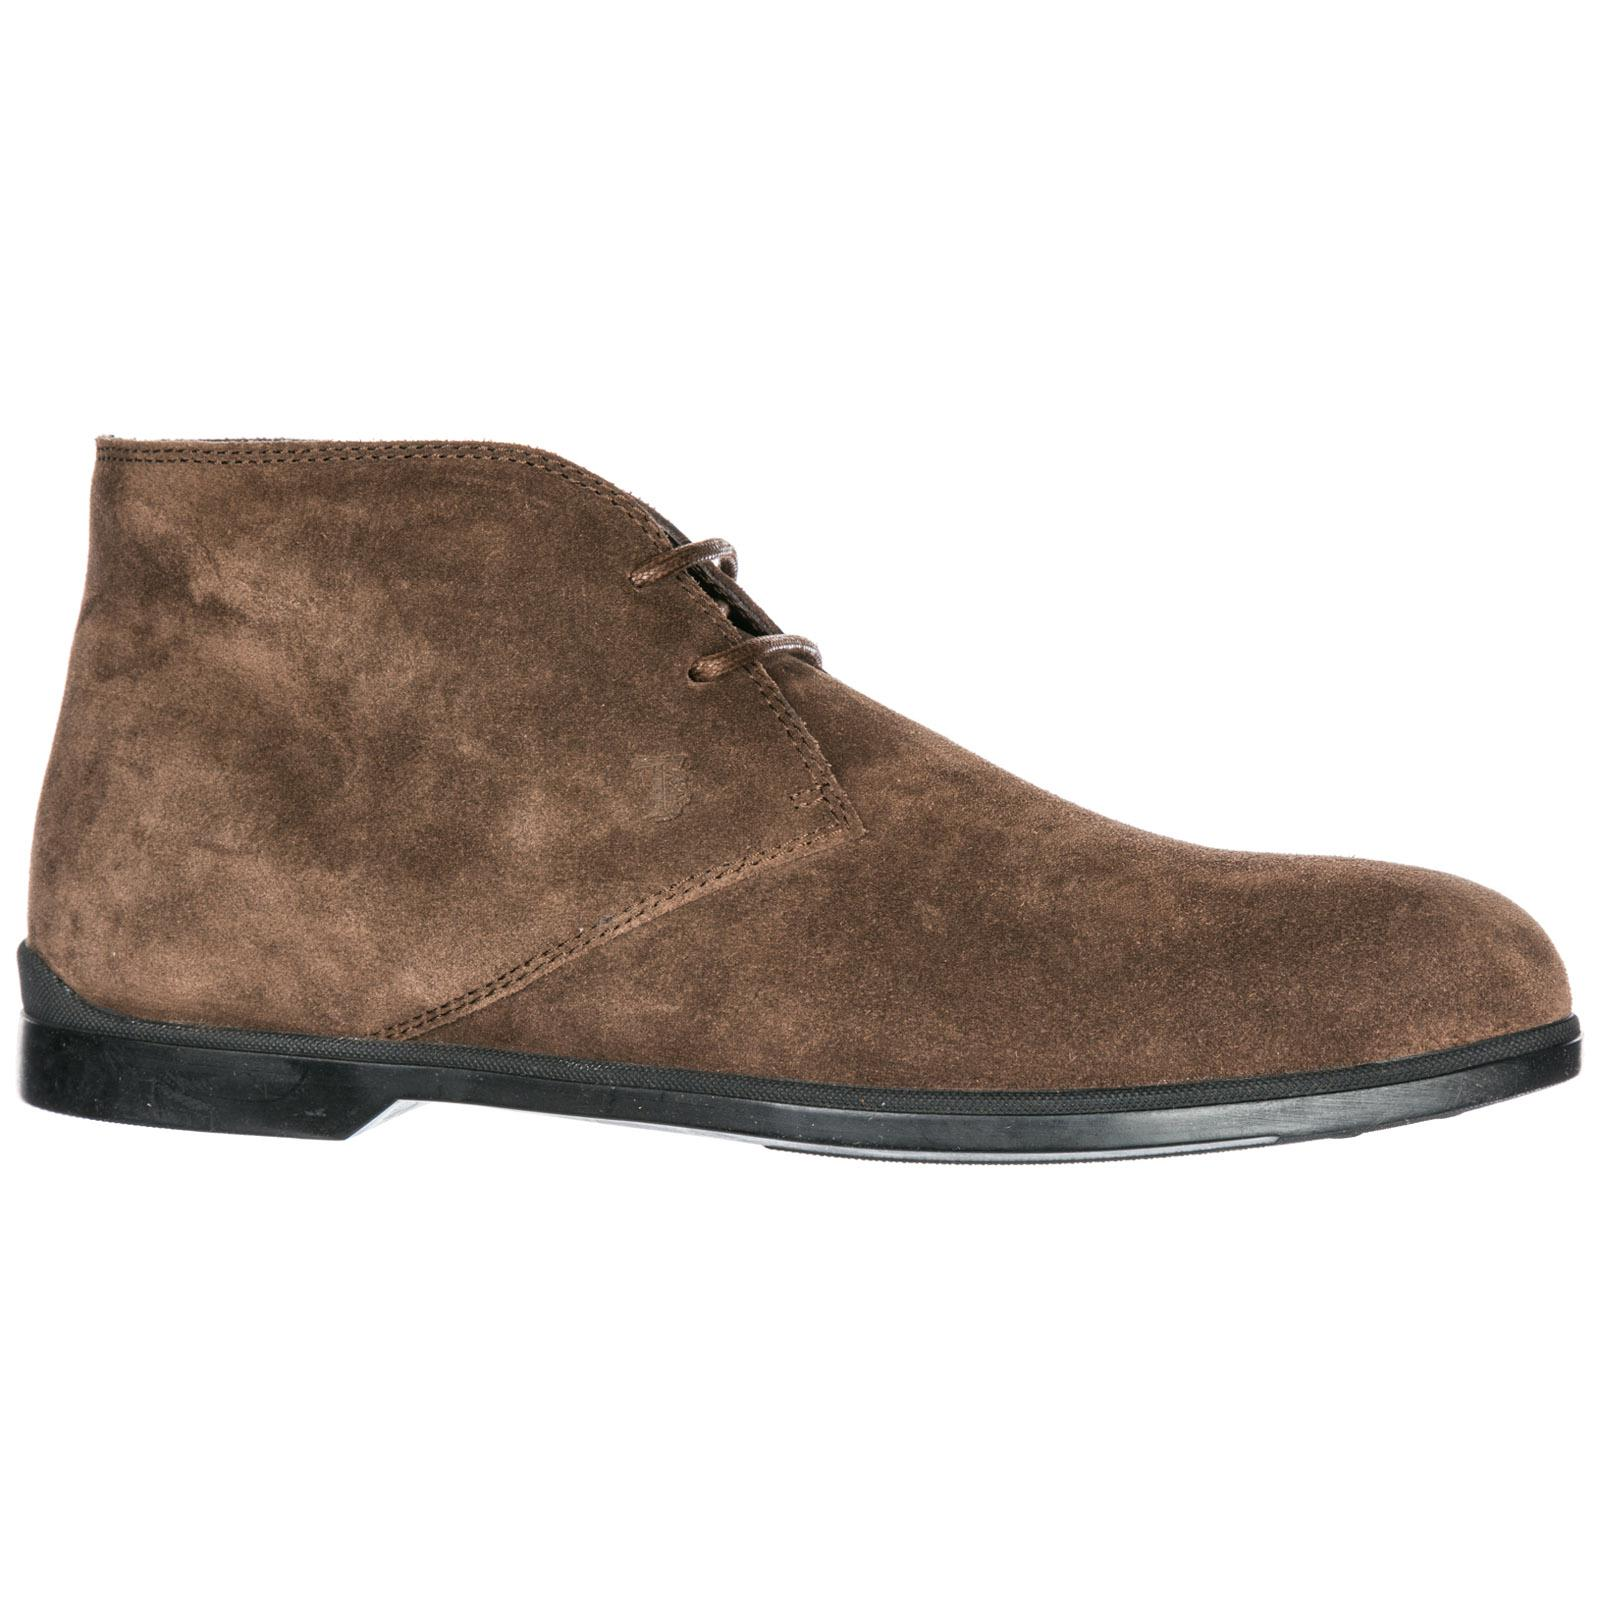 a21b4635 Tod's Suede Desert Boots Lace Up Ankle Boots in Brown for Men - Lyst